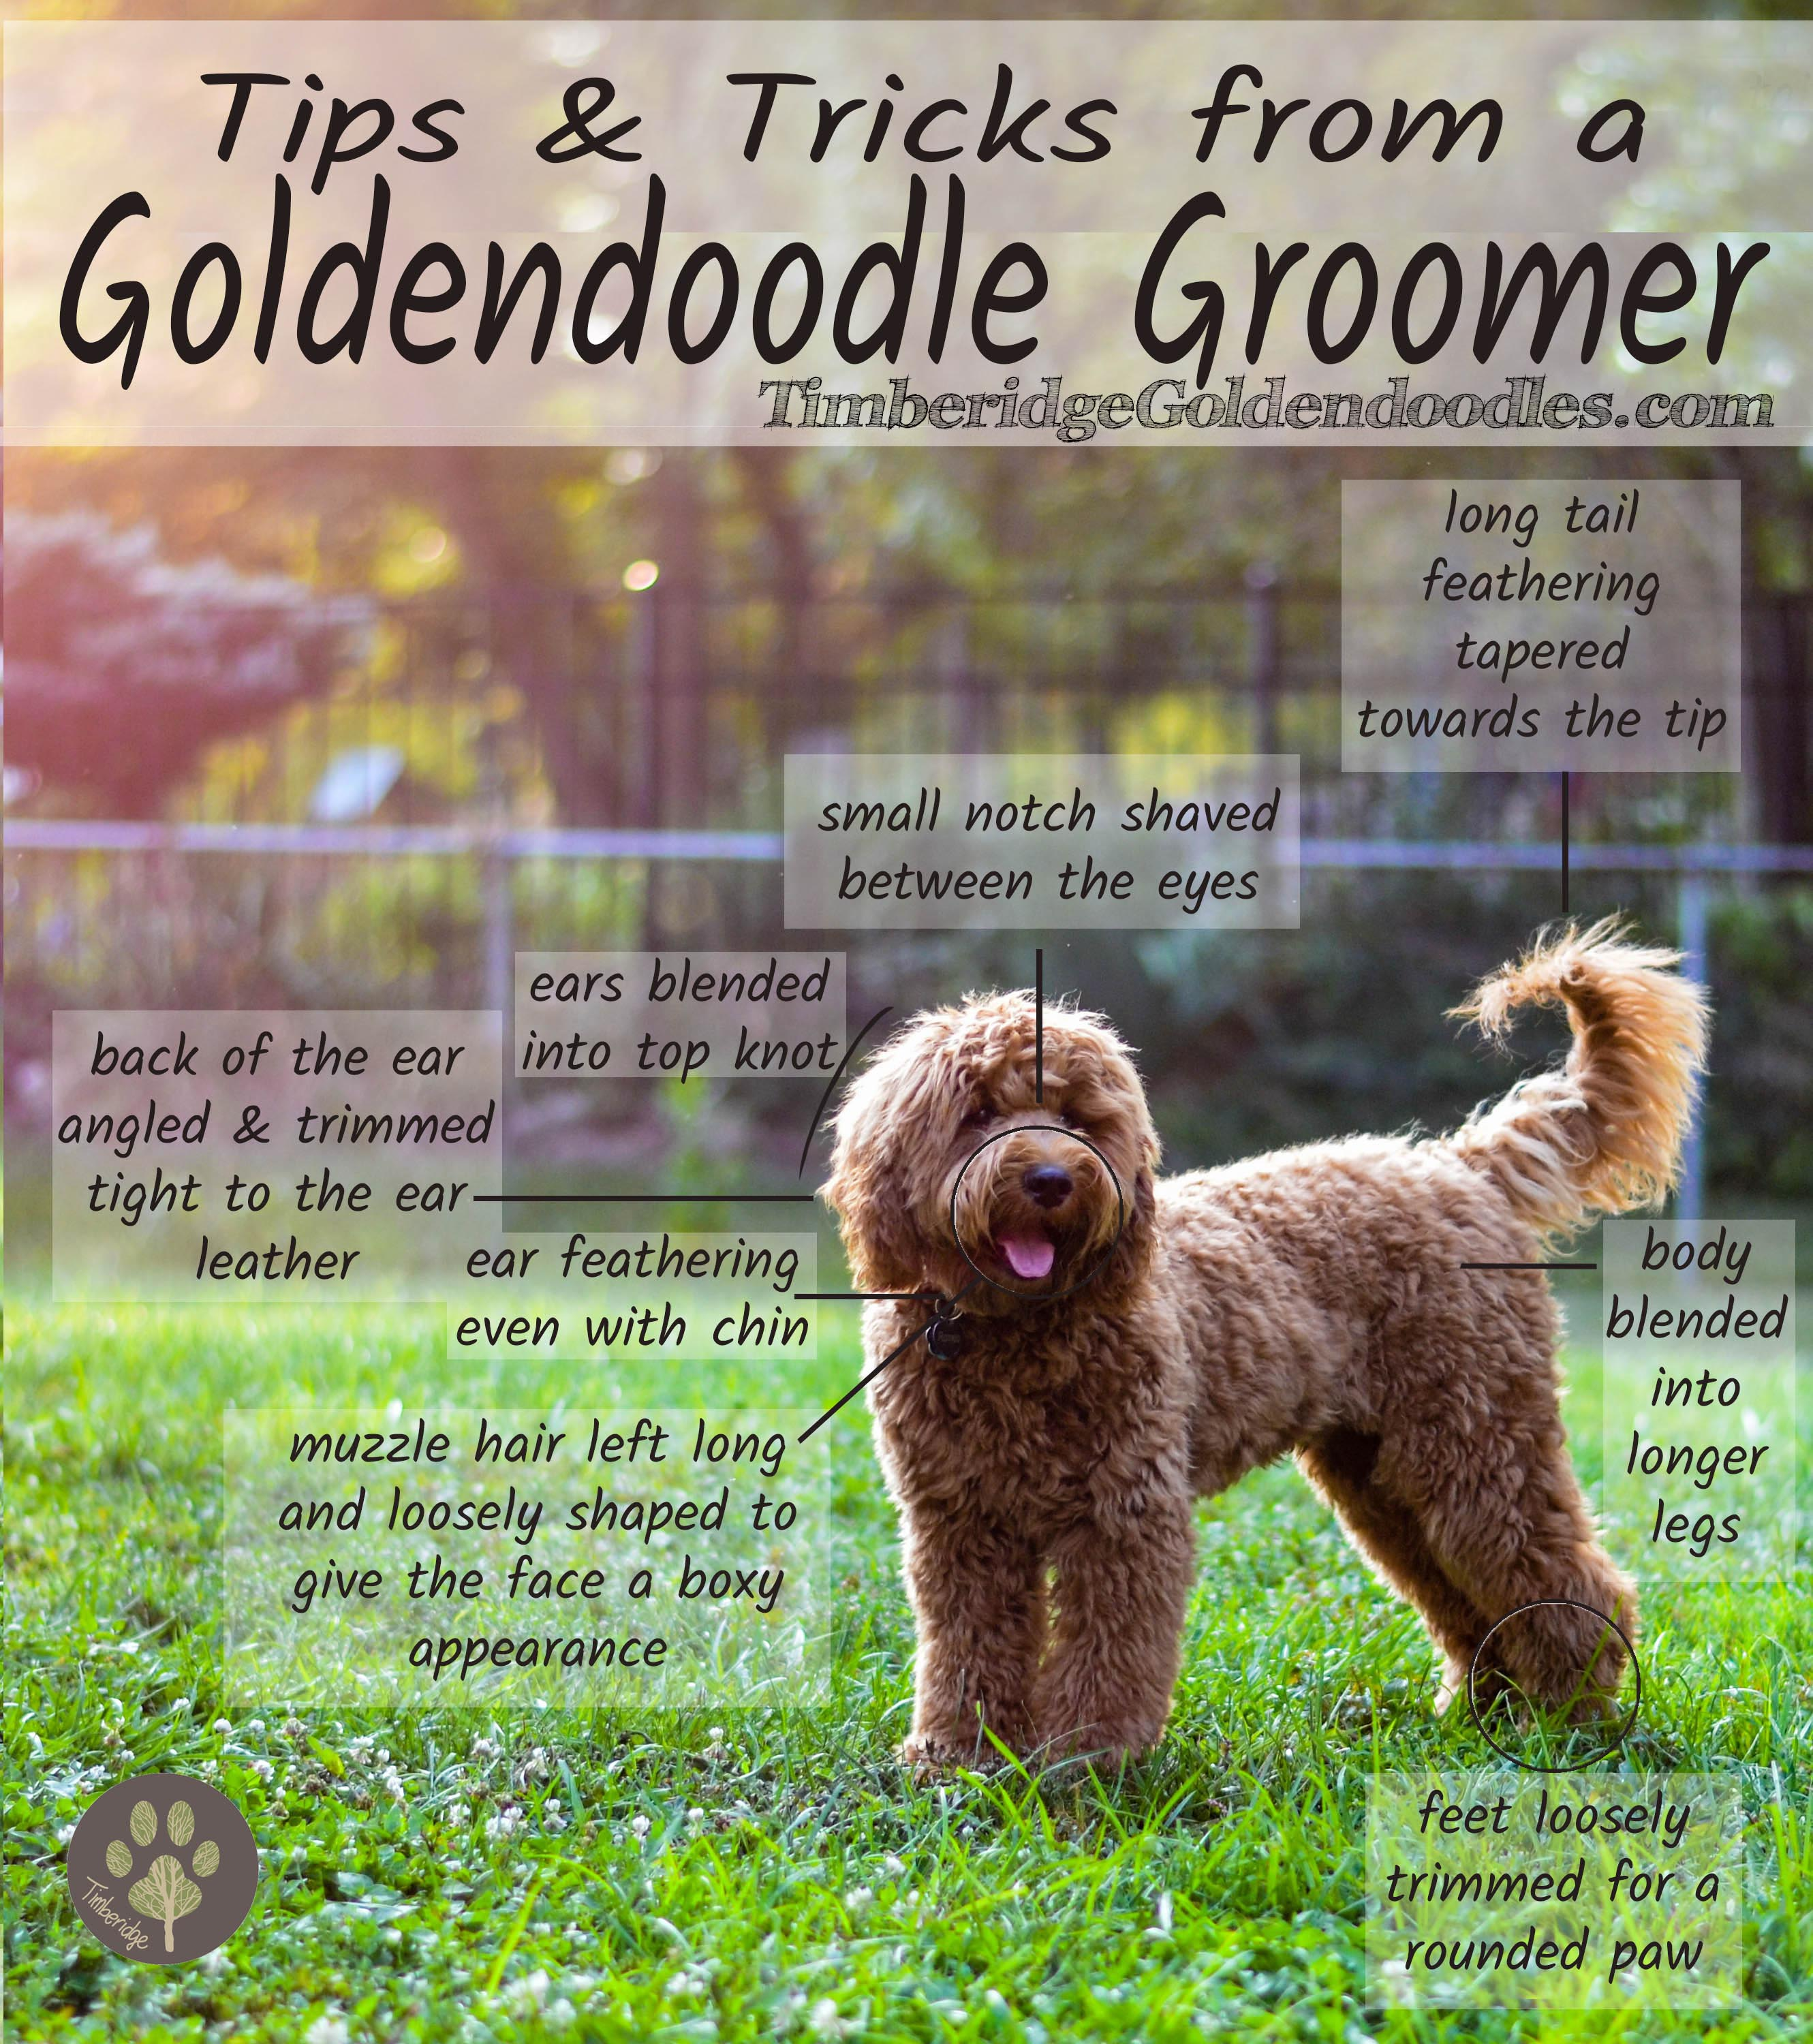 Q&A With A Goldendoodle Groomer - Timberidge Goldendoodles